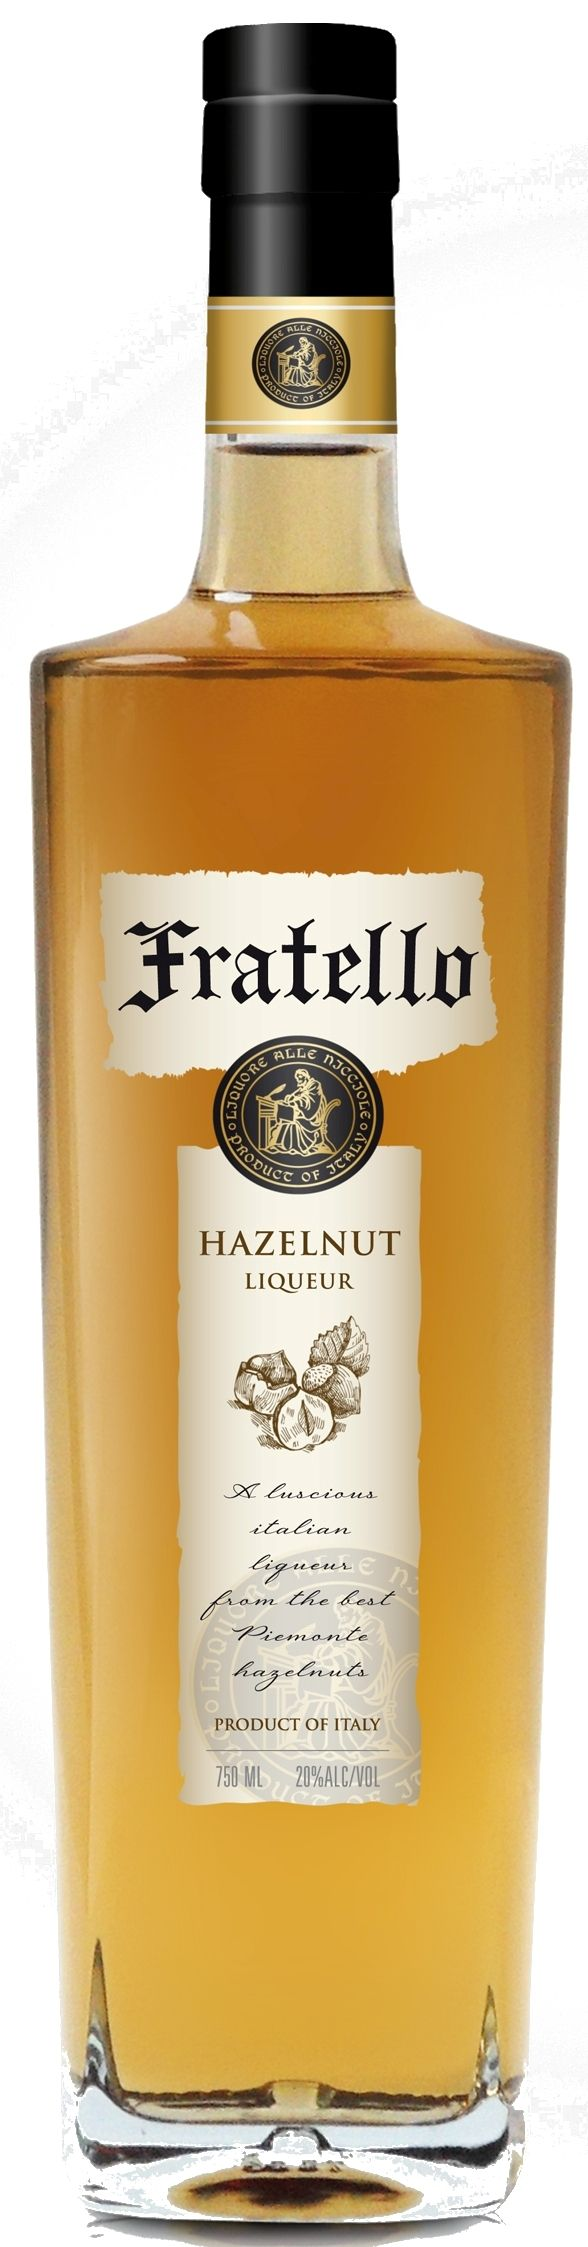 Fratello Hazelnut Liqueur Produced by the Francoli Distillery in Italy's beautiful Lake District of Piemonte, Fratello is made from toasted hazelnuts and infusions of cocoa, vanilla berries and elderflowers. With a tasty aroma of fresh cracked hazelnuts, peanut butter and cheesecake, this subdued, mildly flavored drink will be enjoyed by all.